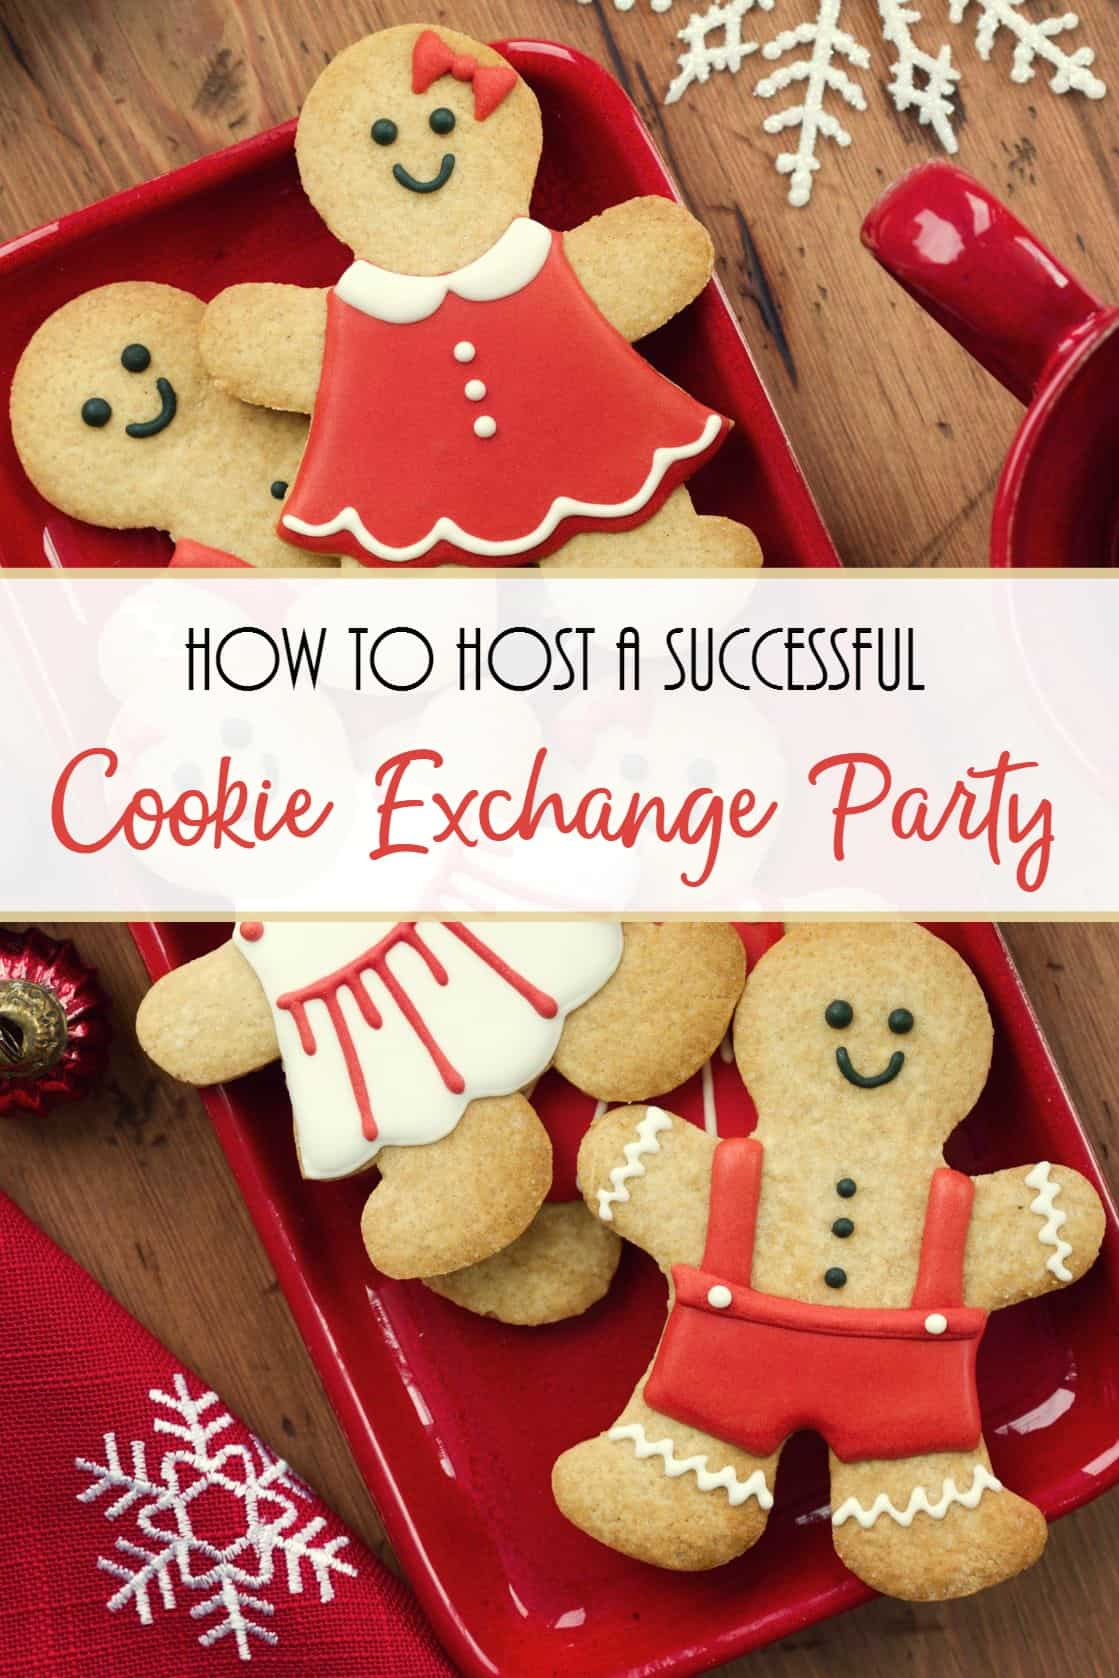 How to Host Successful Cookie Exchange Party